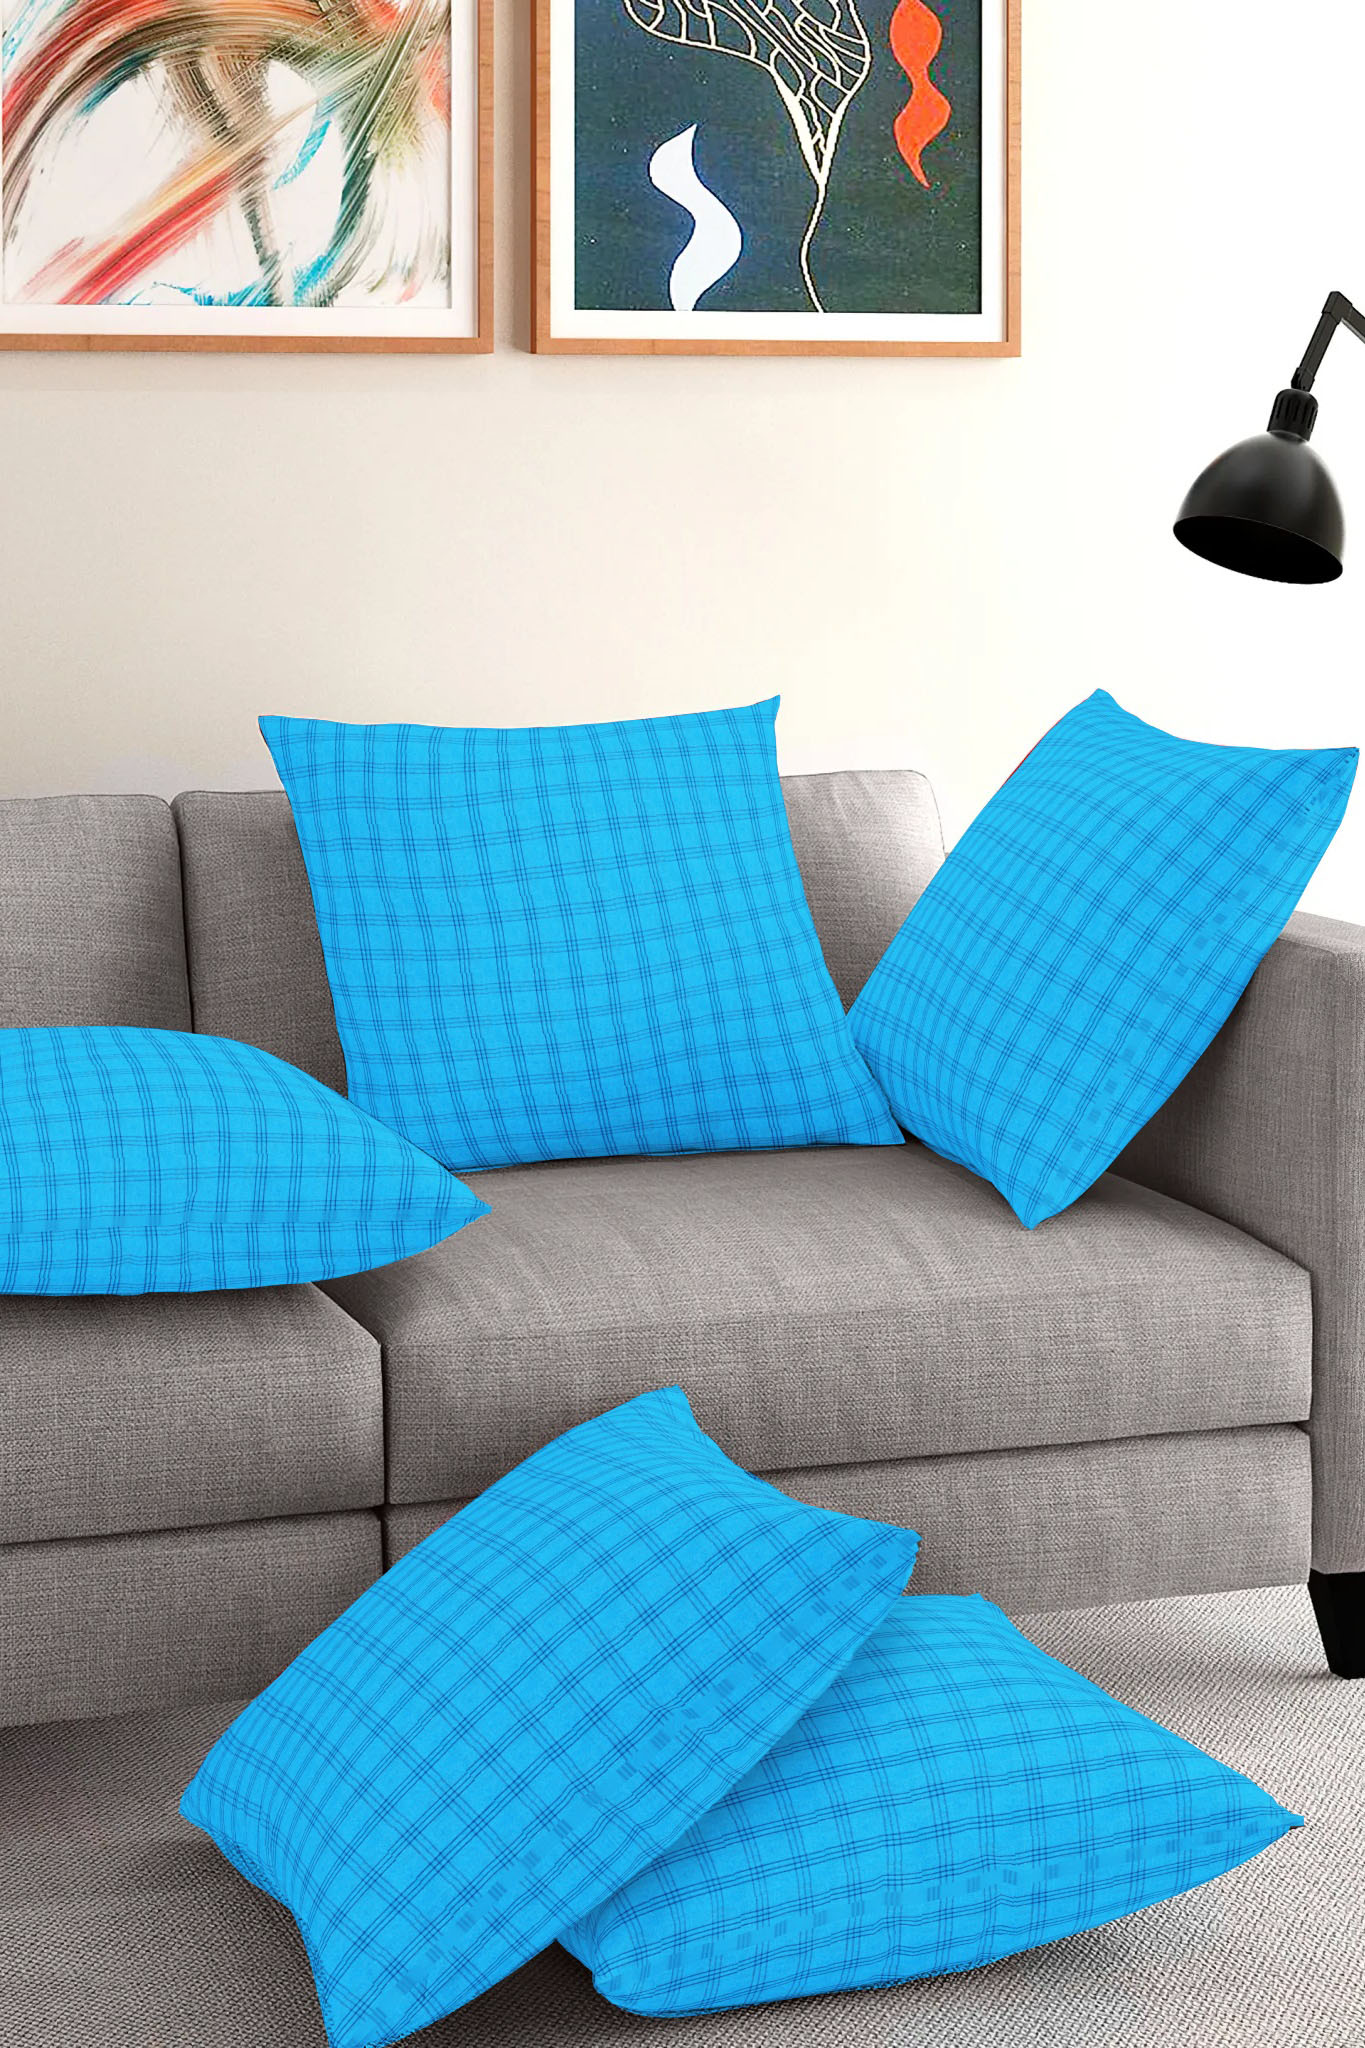 Set of 5-Sky Blue Blue Cotton Cushion Cover-35413-16x16 Inches